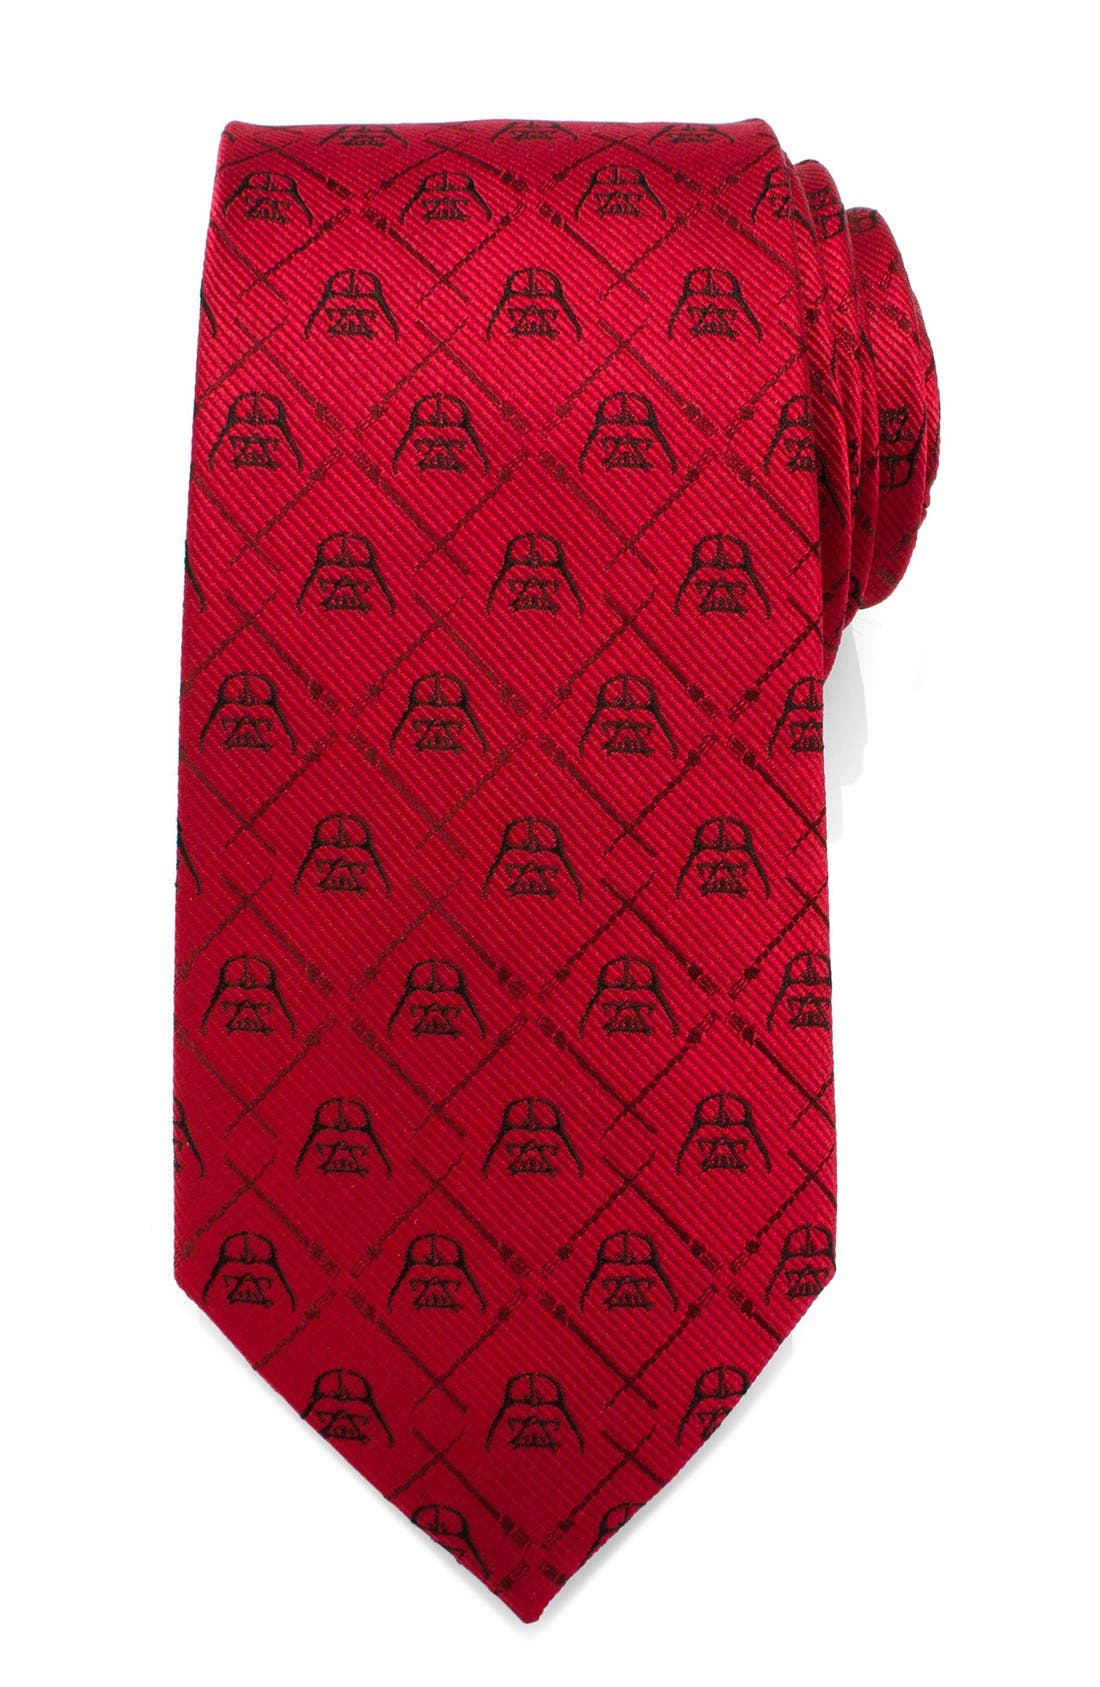 'Darth Vader' Silk Tie,                             Main thumbnail 1, color,                             600